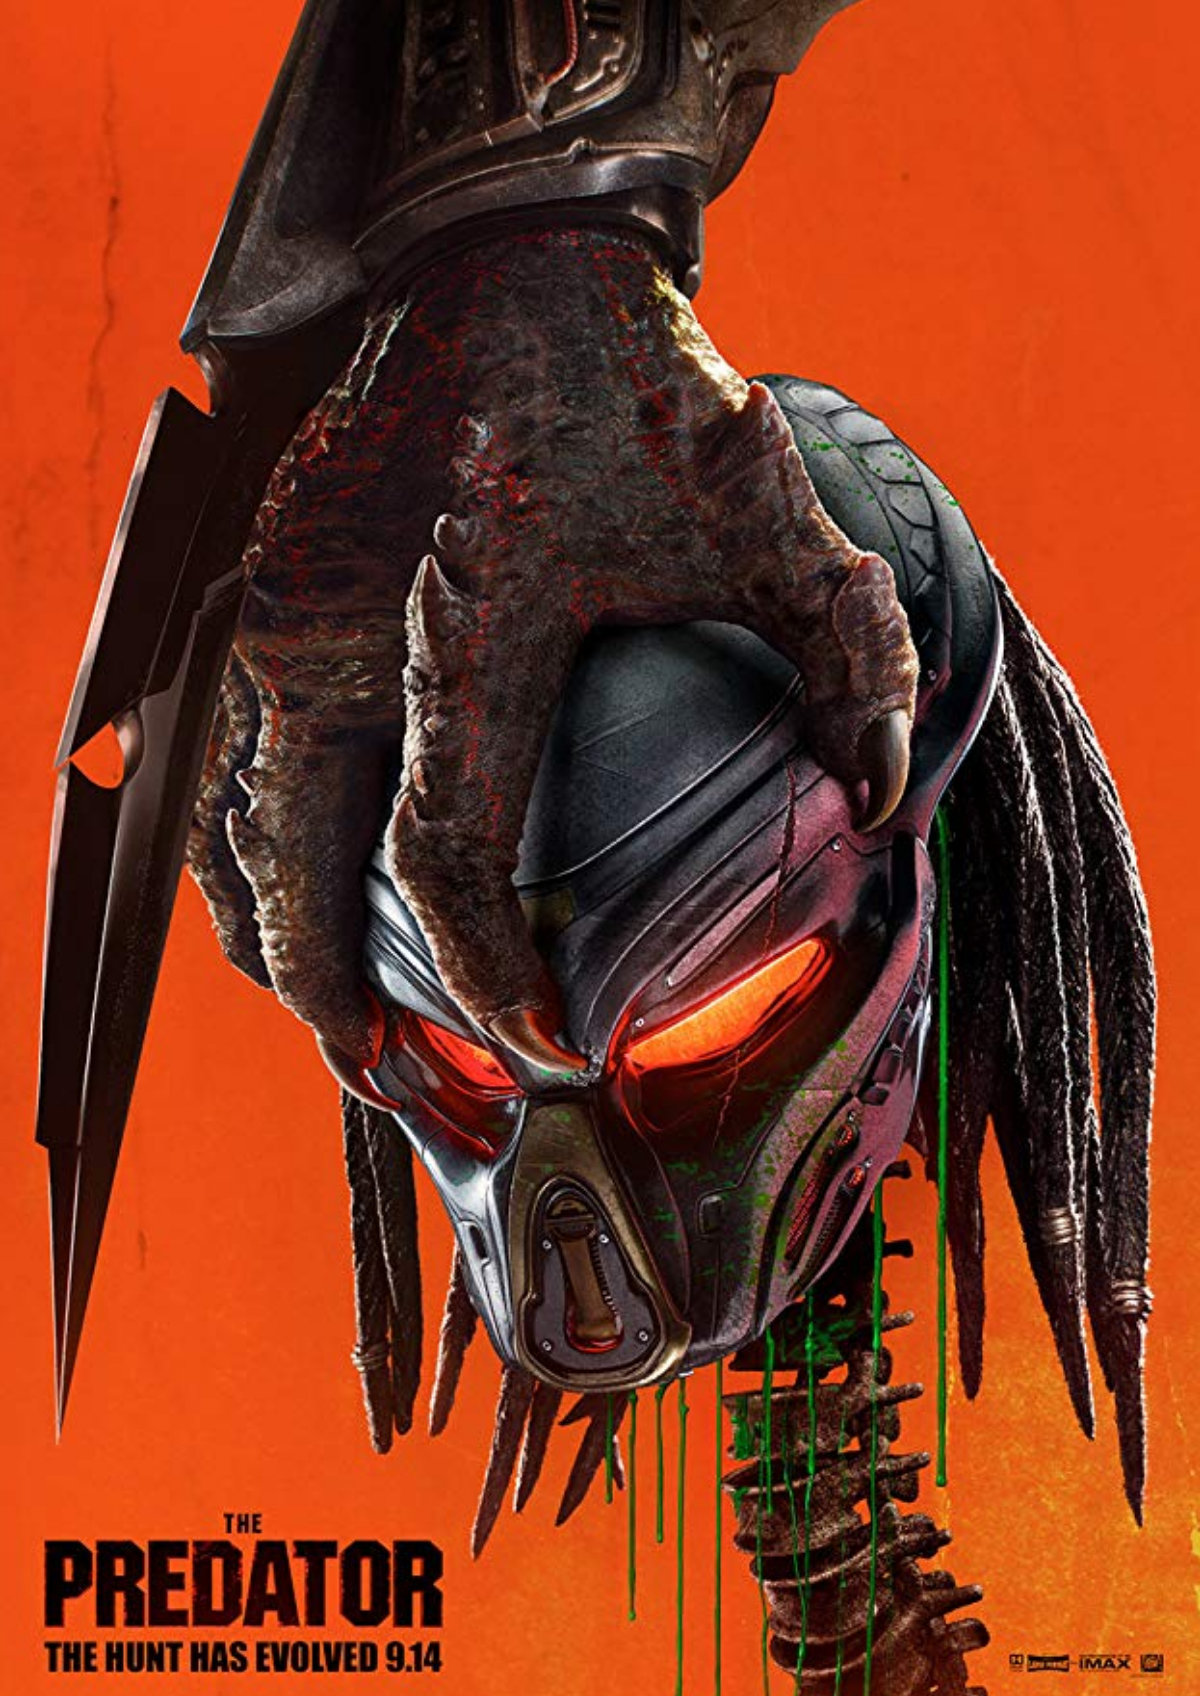 'The Predator' movie poster